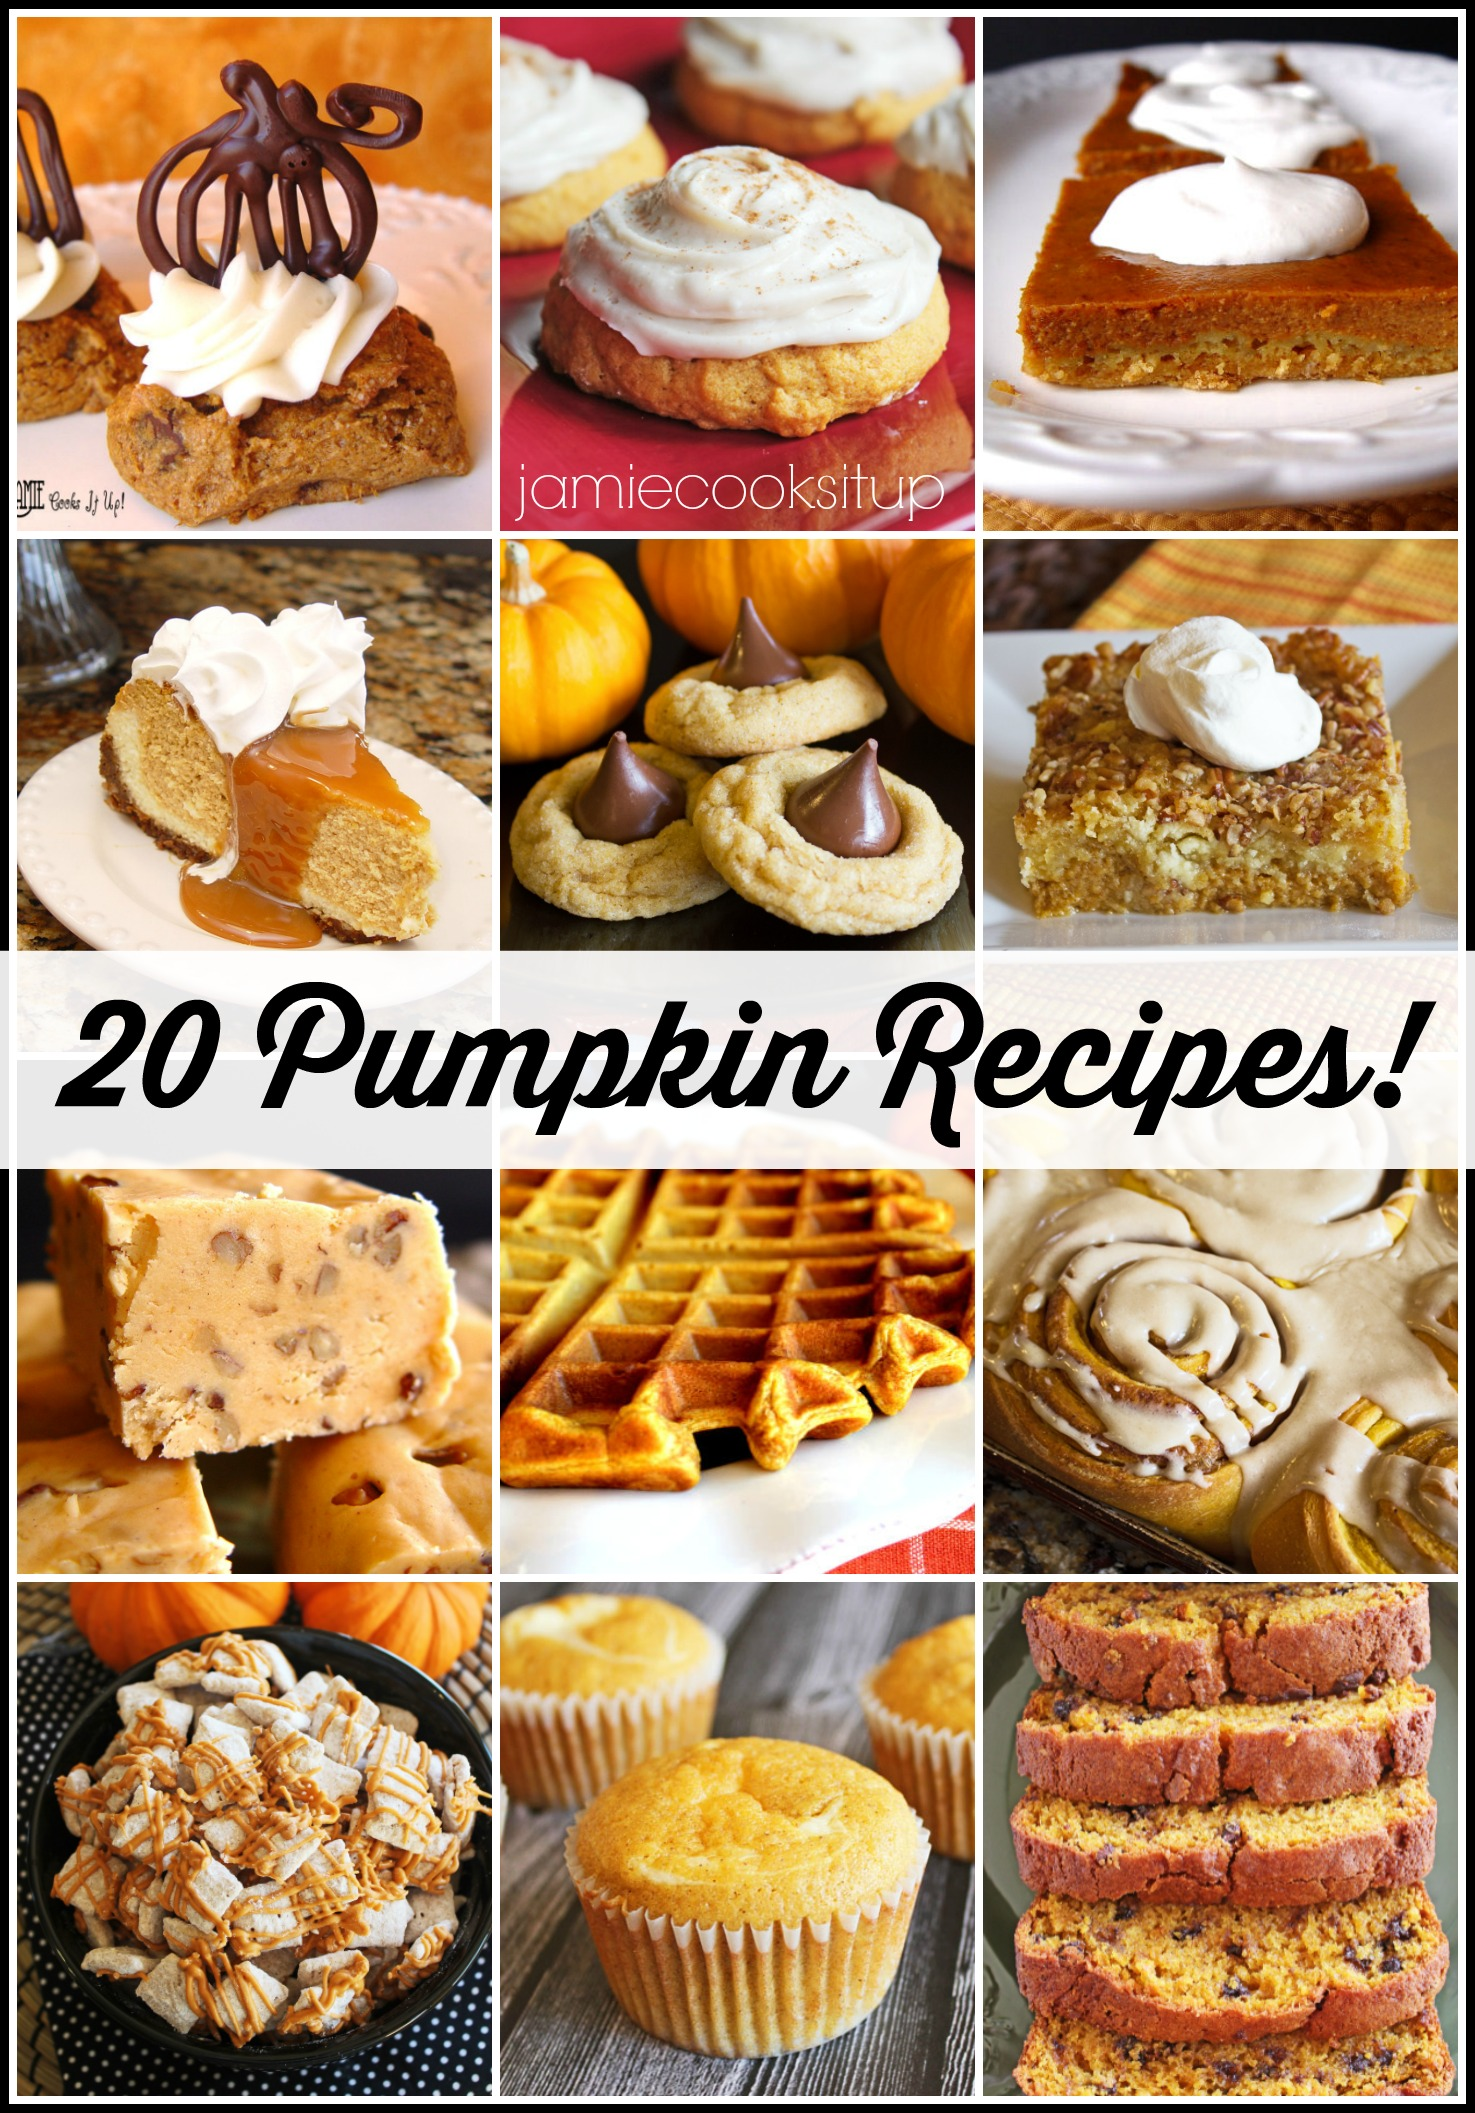 20 Amazing Pumpkin Recipes